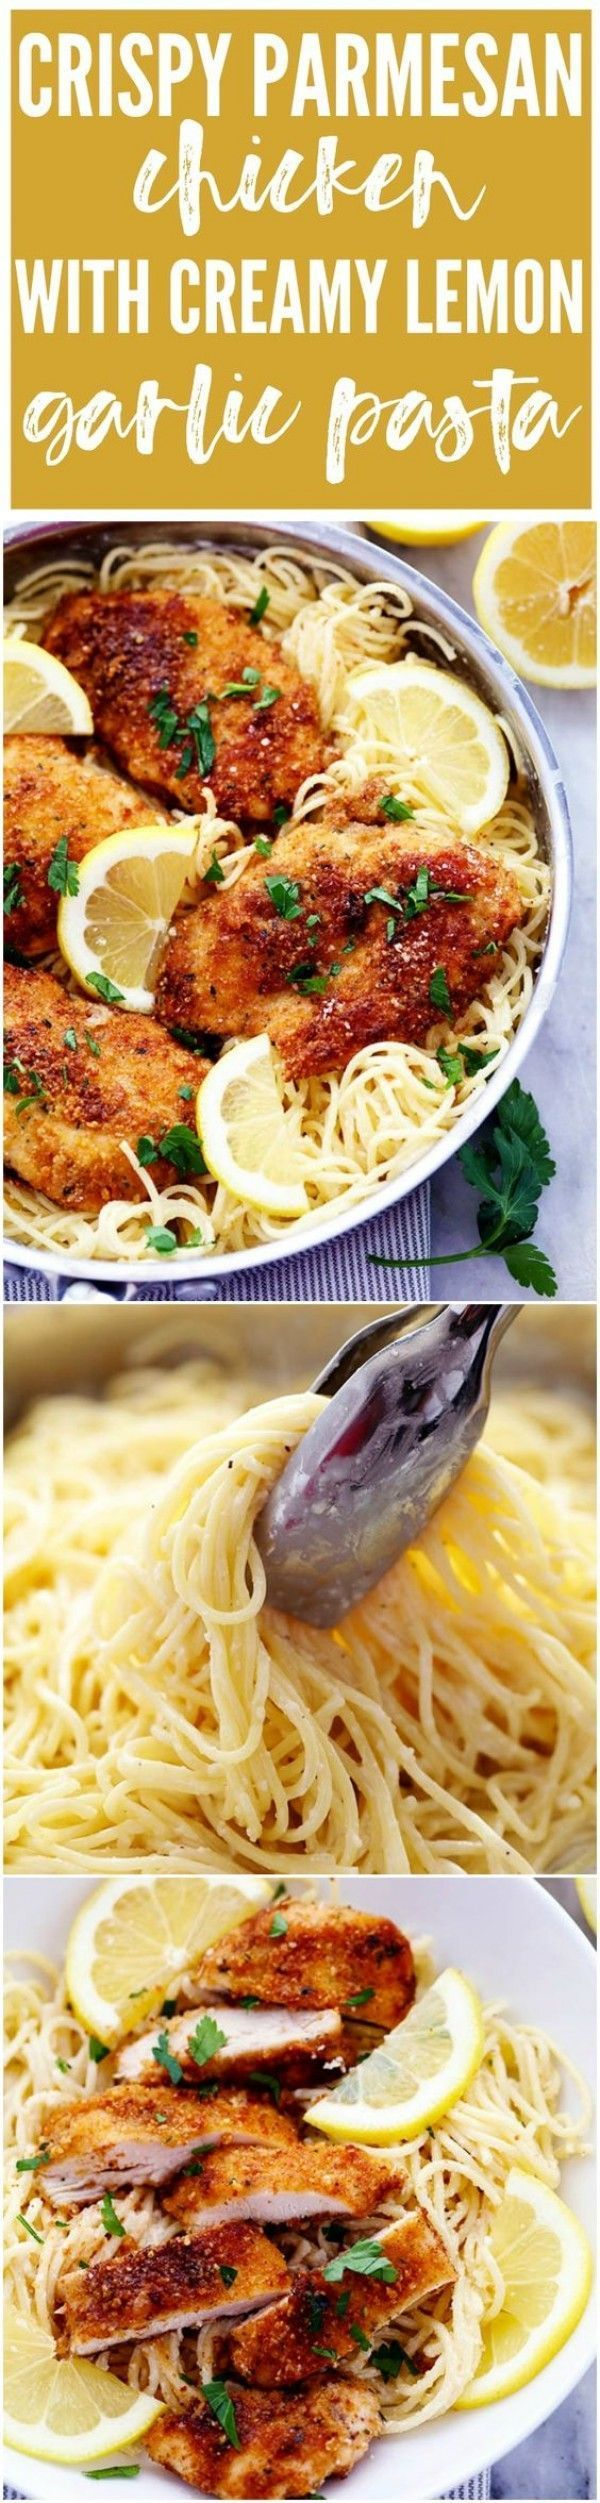 Get the recipe Crispy Parmesan Chicken with Creamy Lemon Garlic Pasta @recipes_to_go